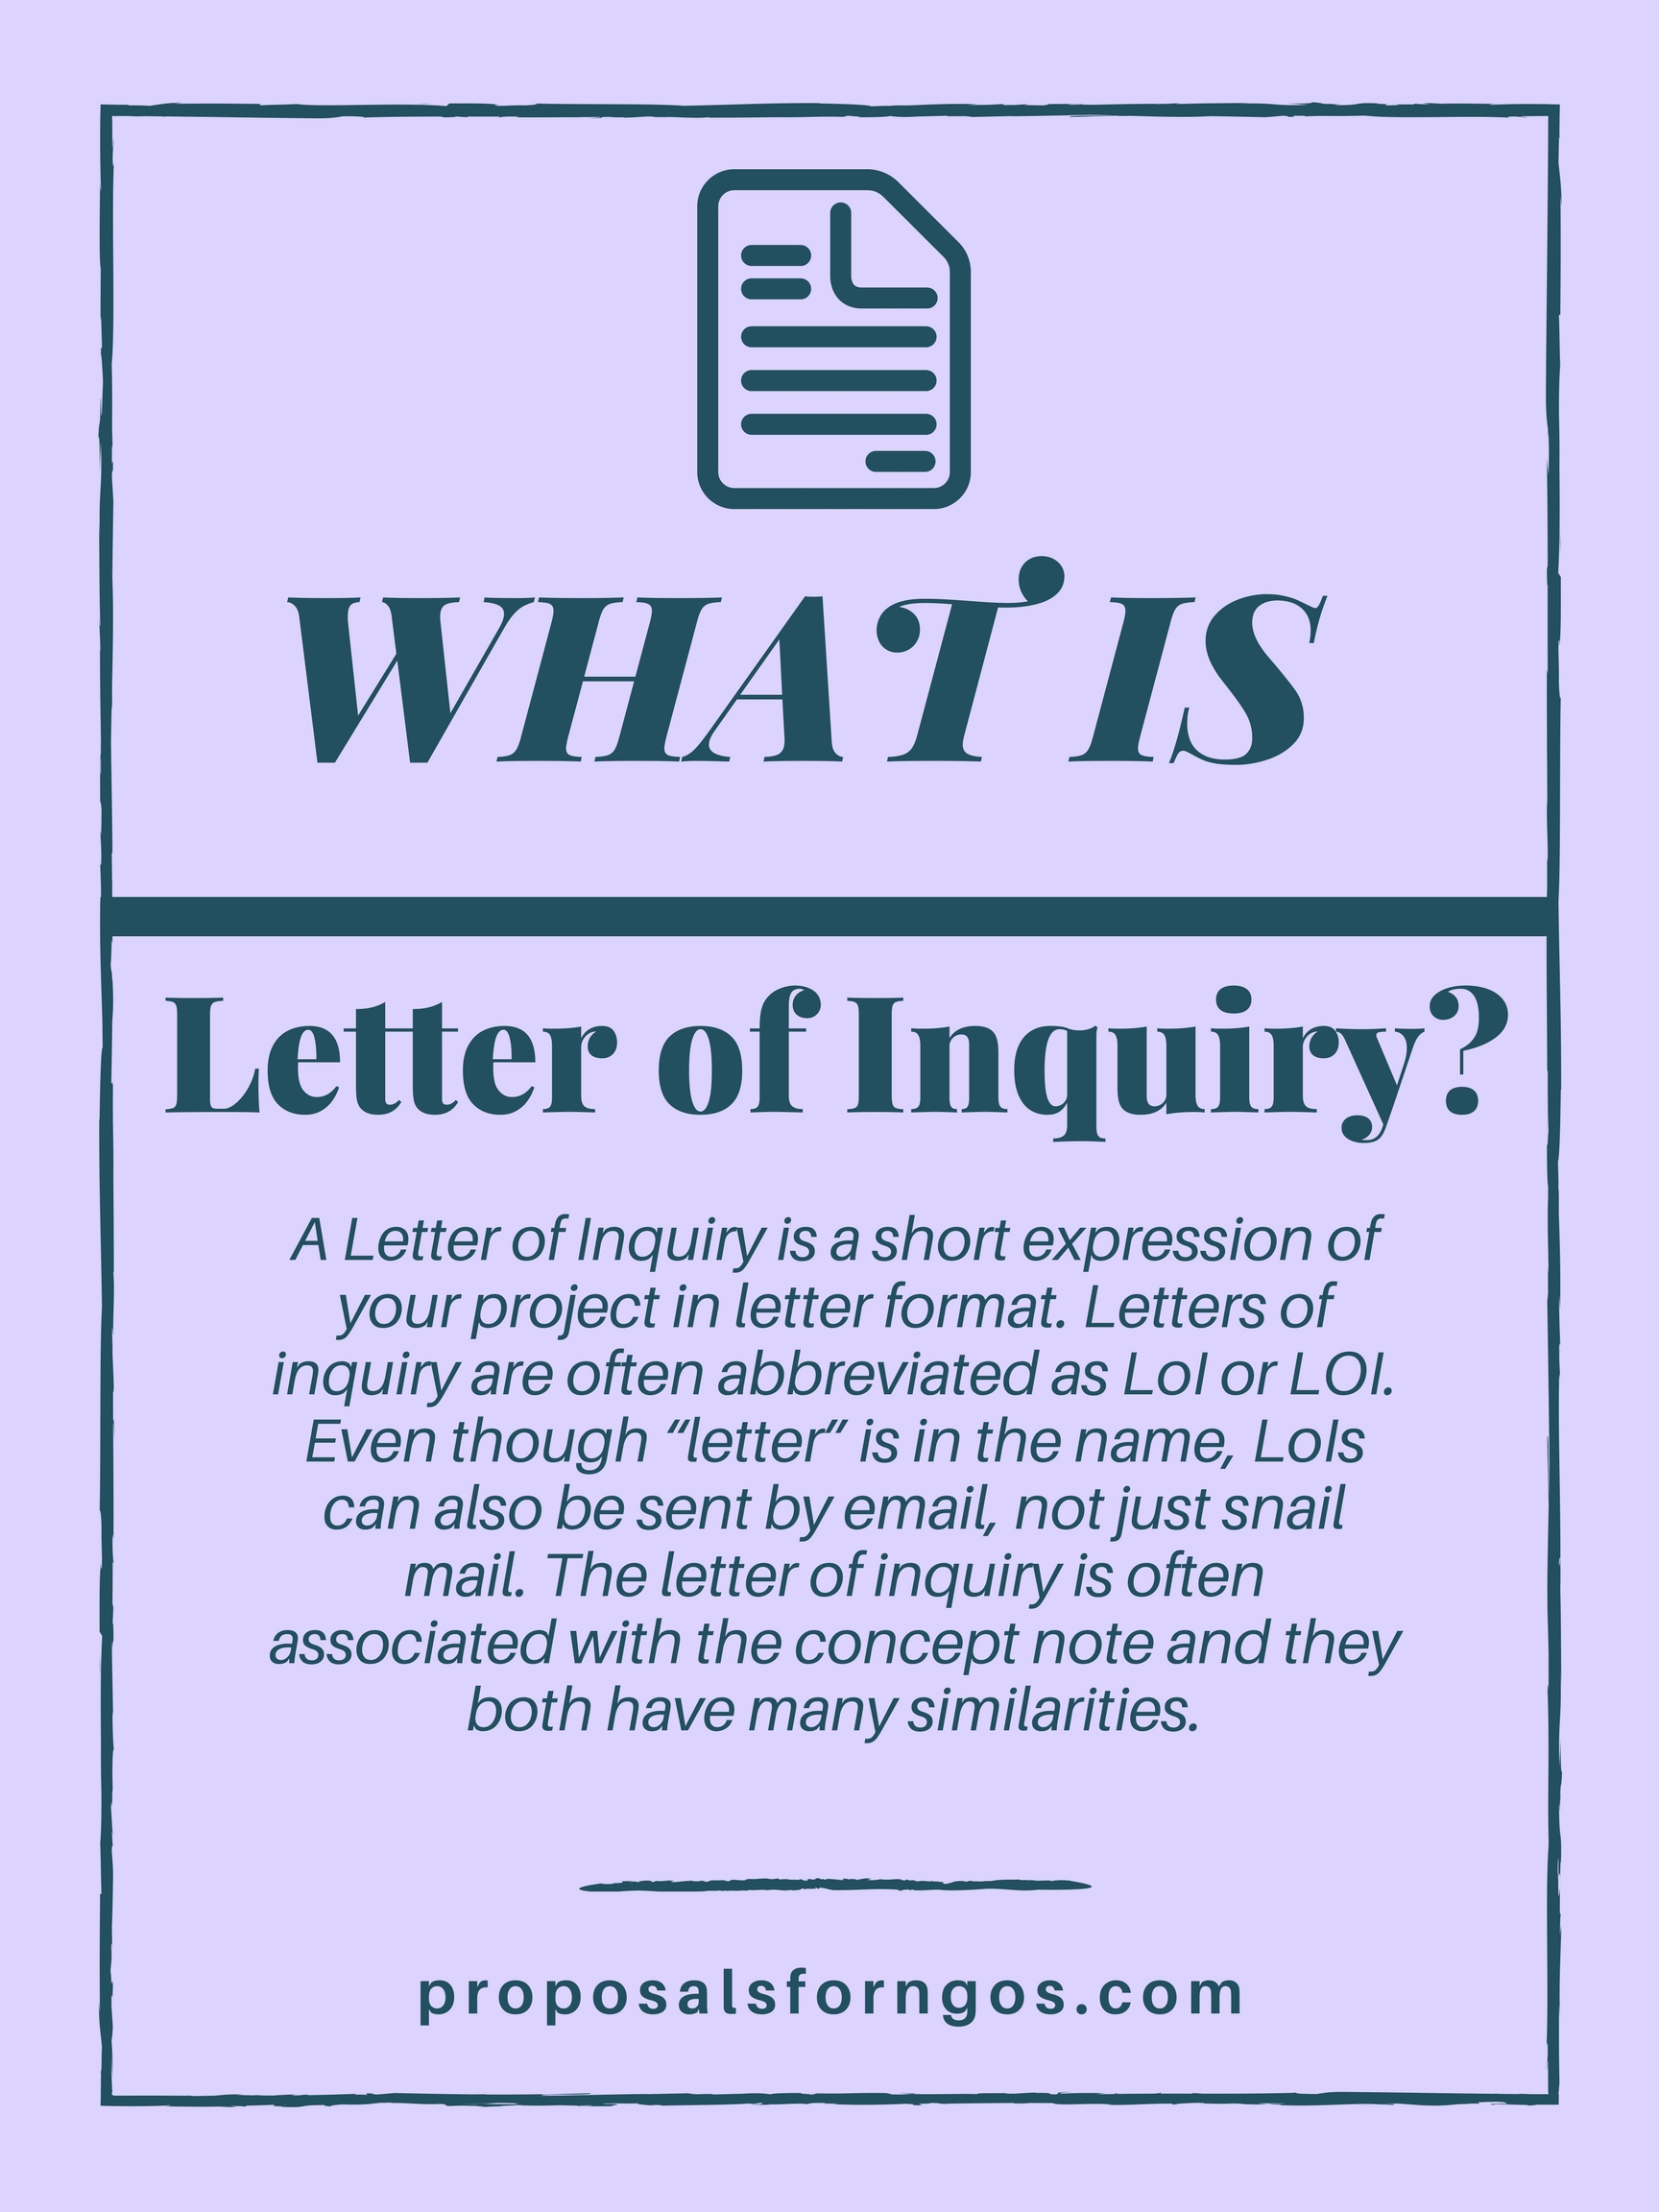 What is a Letter of Inquiry ProposalsforNGOs